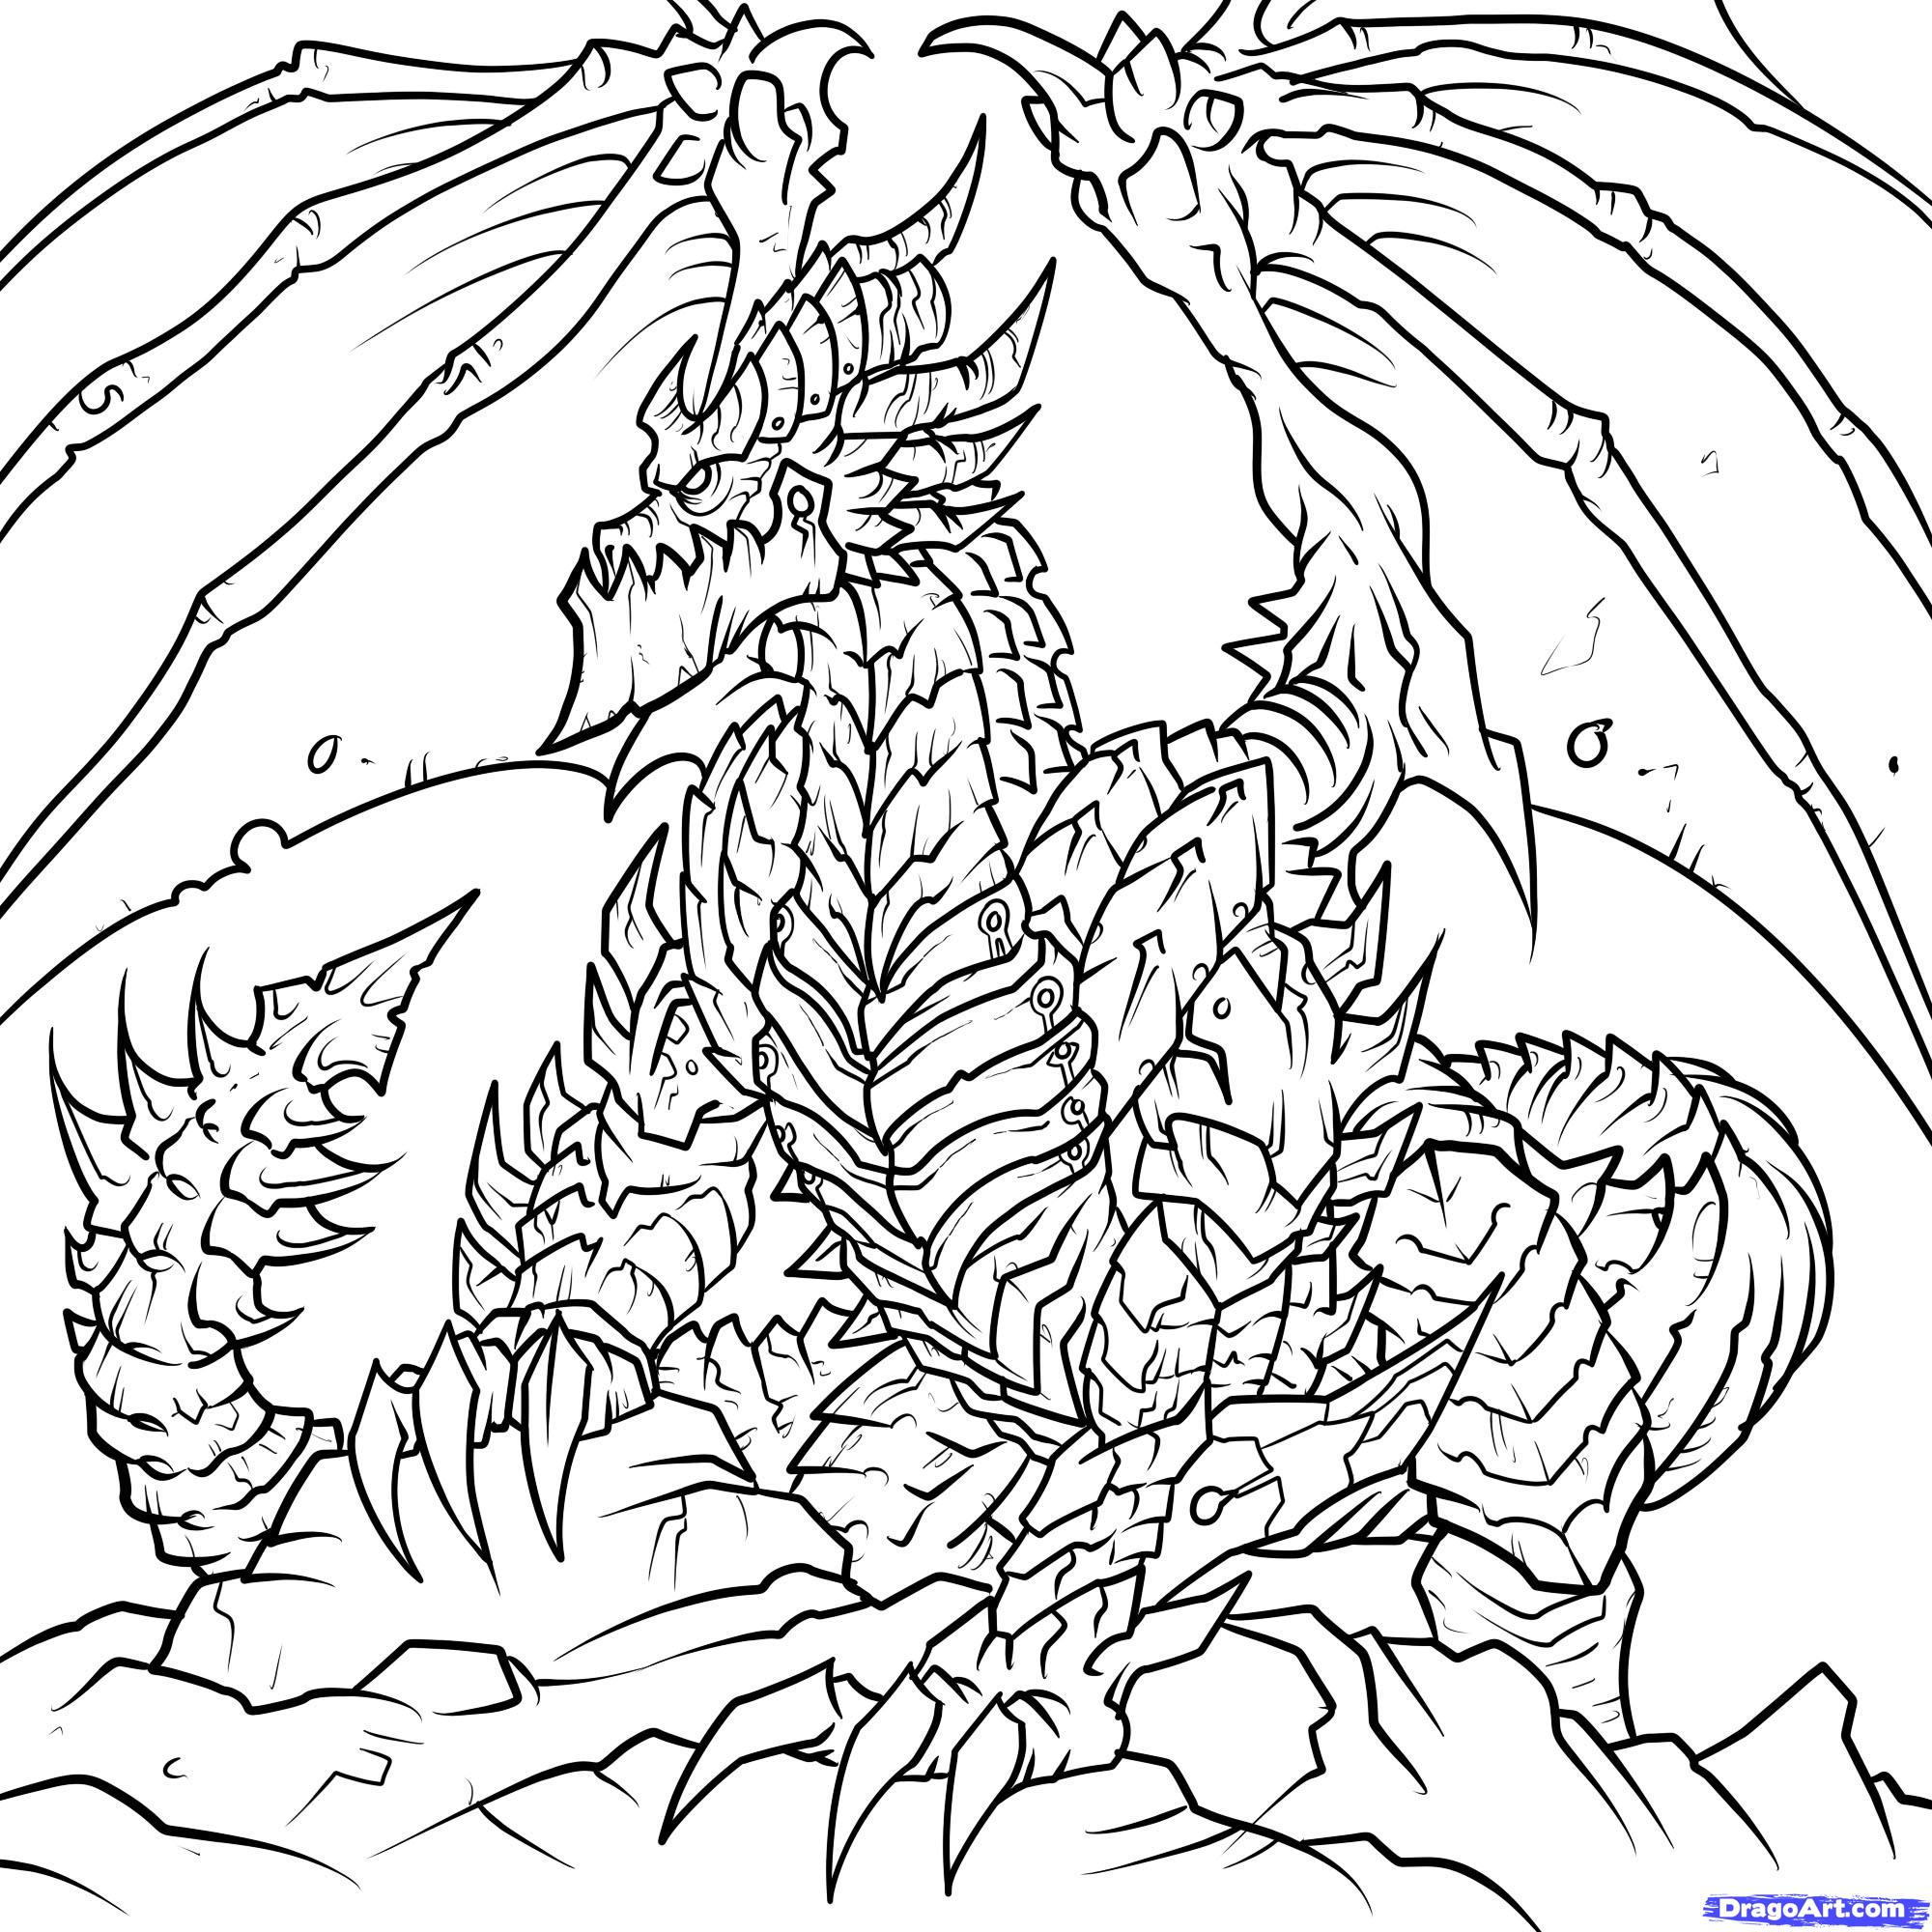 Deathwing (World Of Warcraft) coloring #7, Download drawings